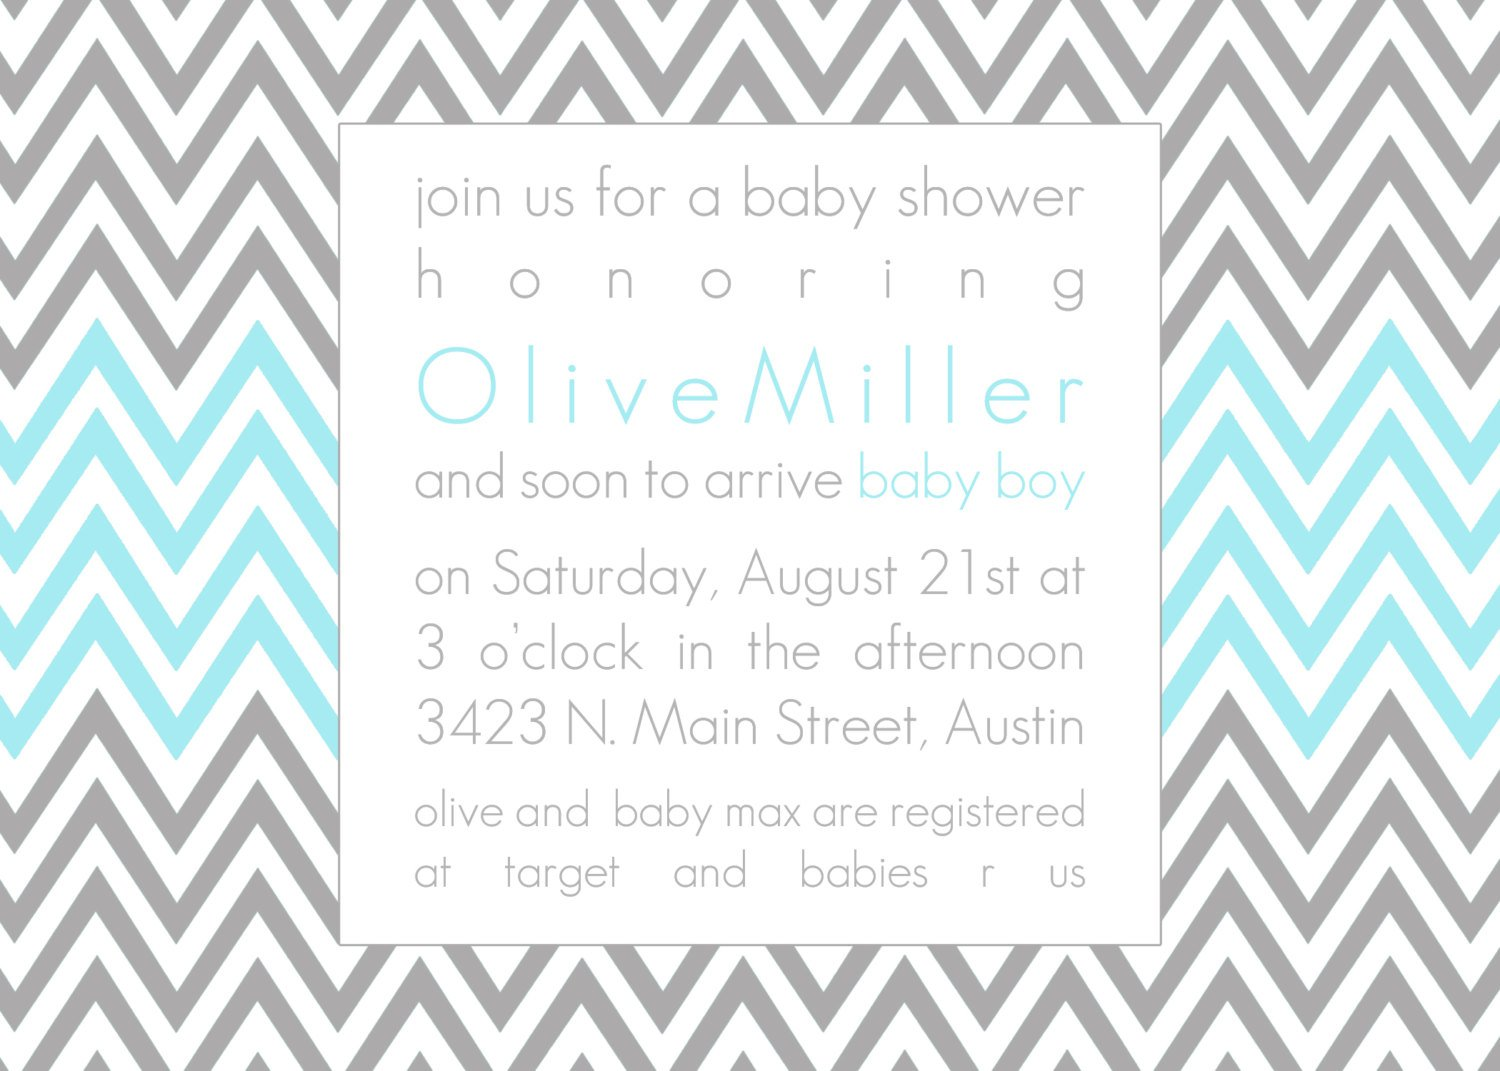 Free Printable Chevron Baby Shower Invitation